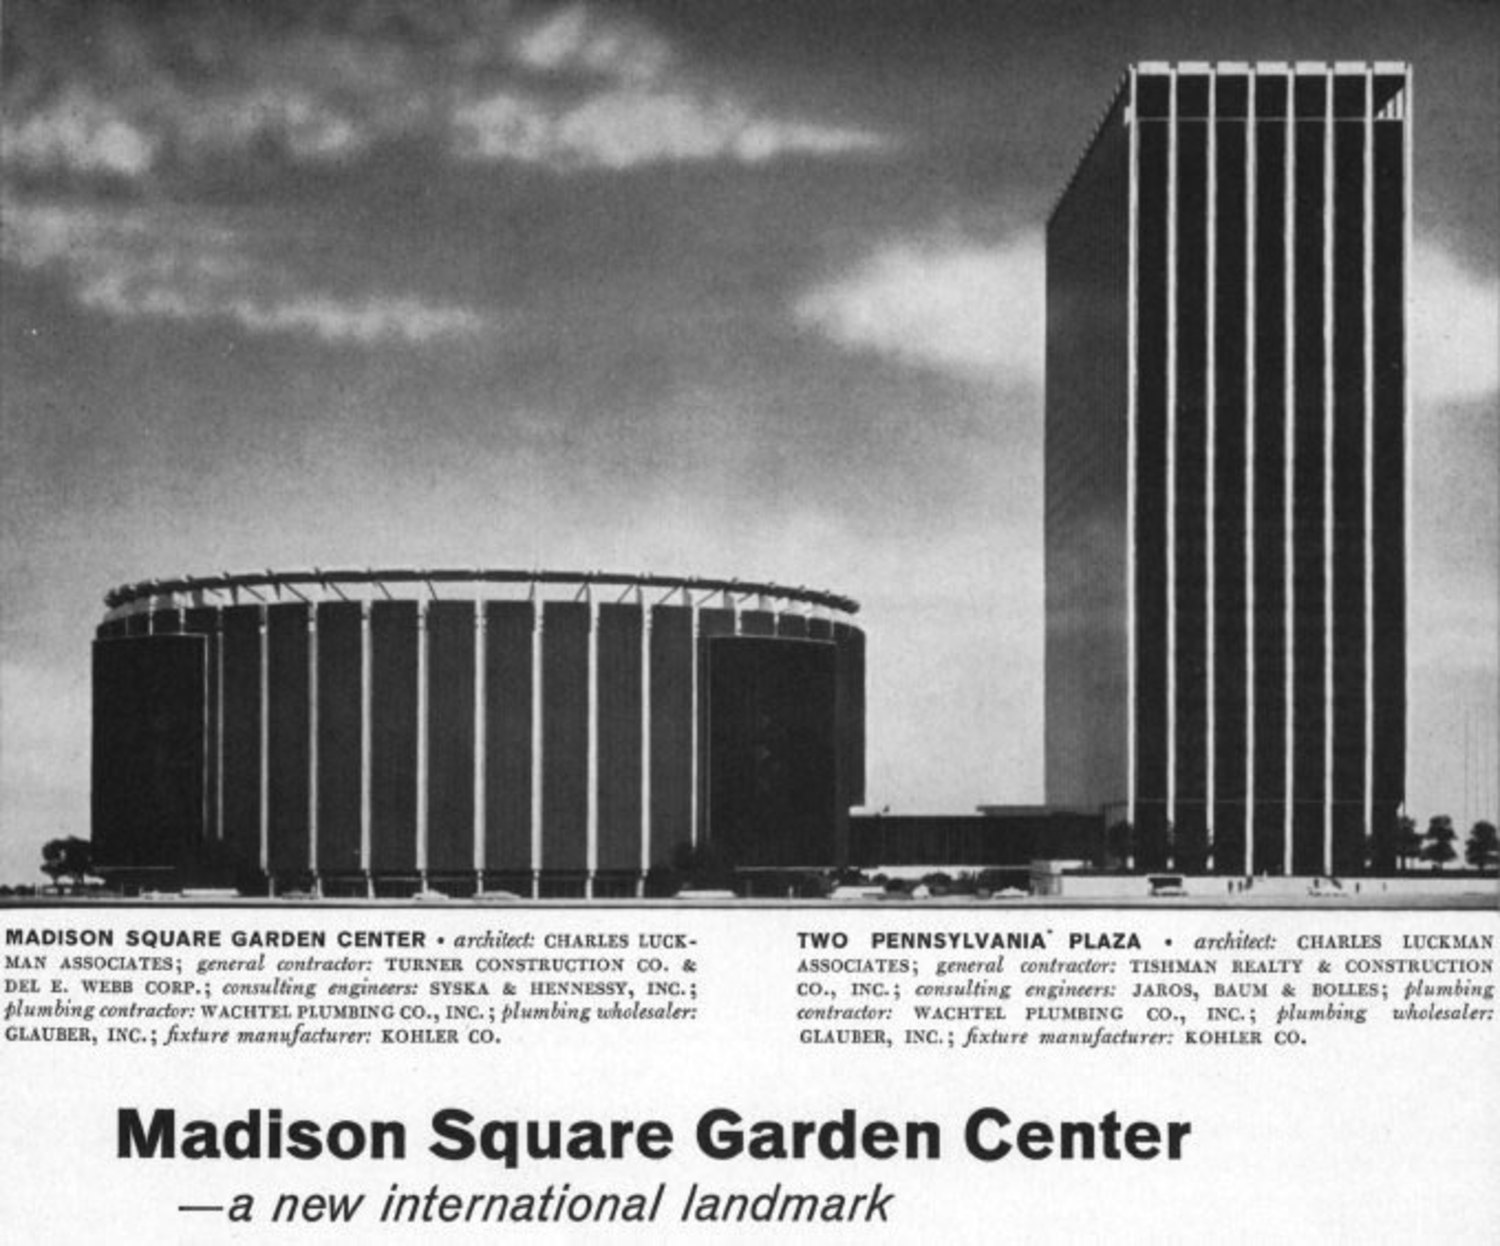 Madison Square Garden IV, designed by Charles Luckman Associates. This may surprise no one, but their other claims to fame include designing both Kennedy Space Center in Florida and Johnson Space Center in Texas.